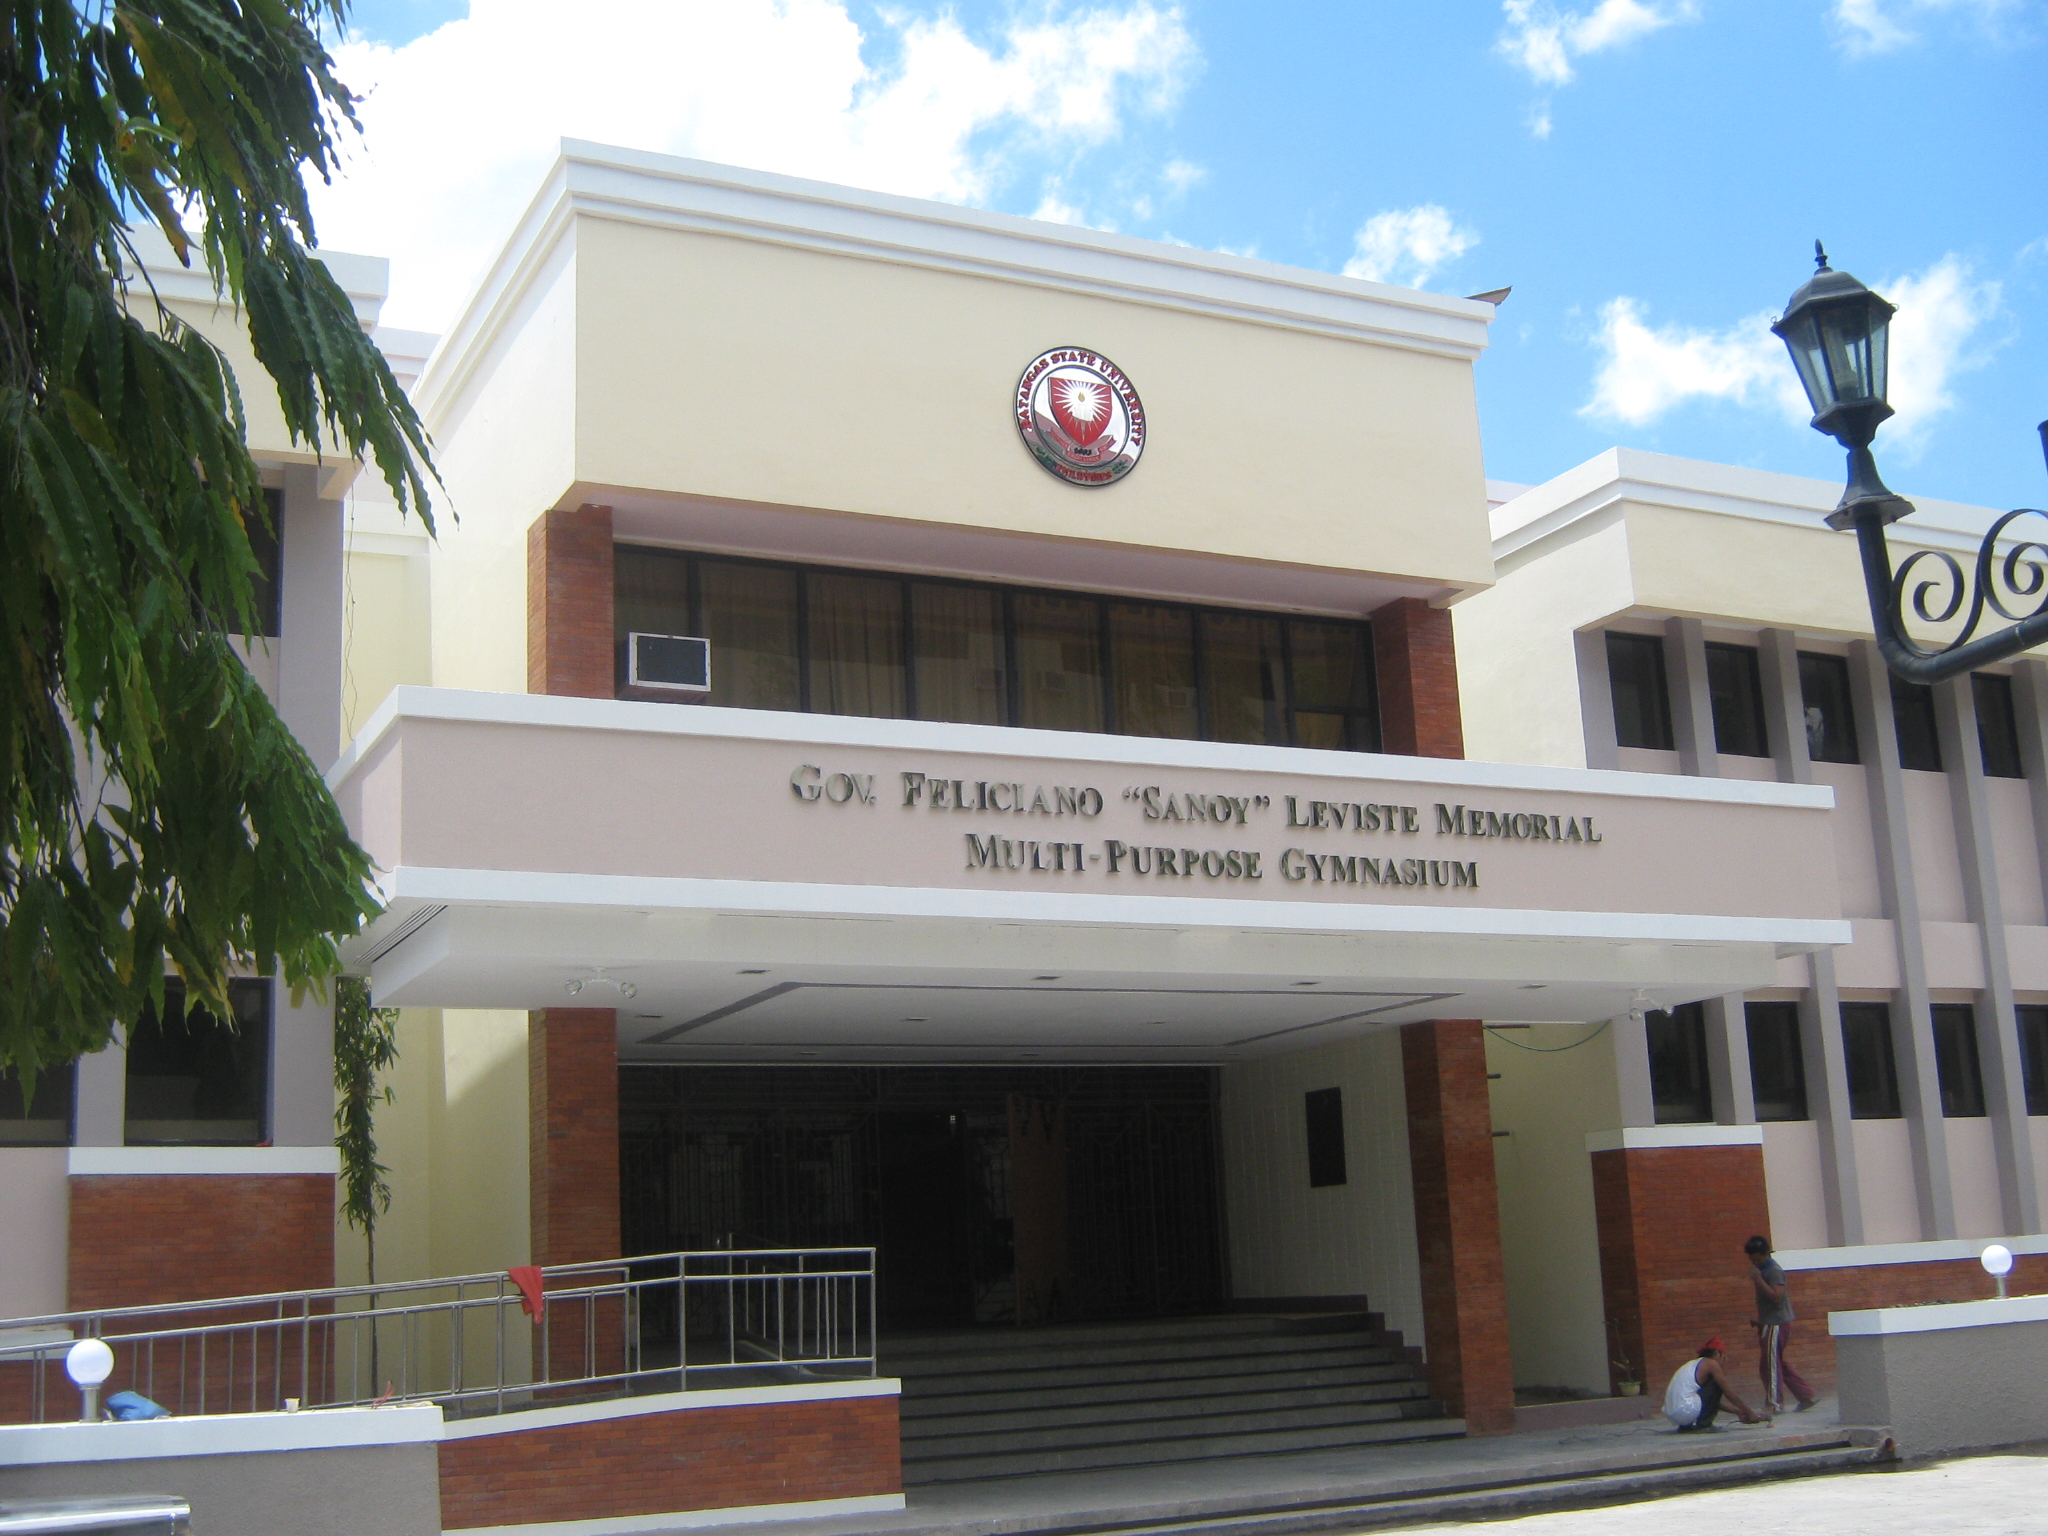 batangas state university University of batangas, batangas city, philippines 86k likes the university of batangas is the first university and biggest private educational.